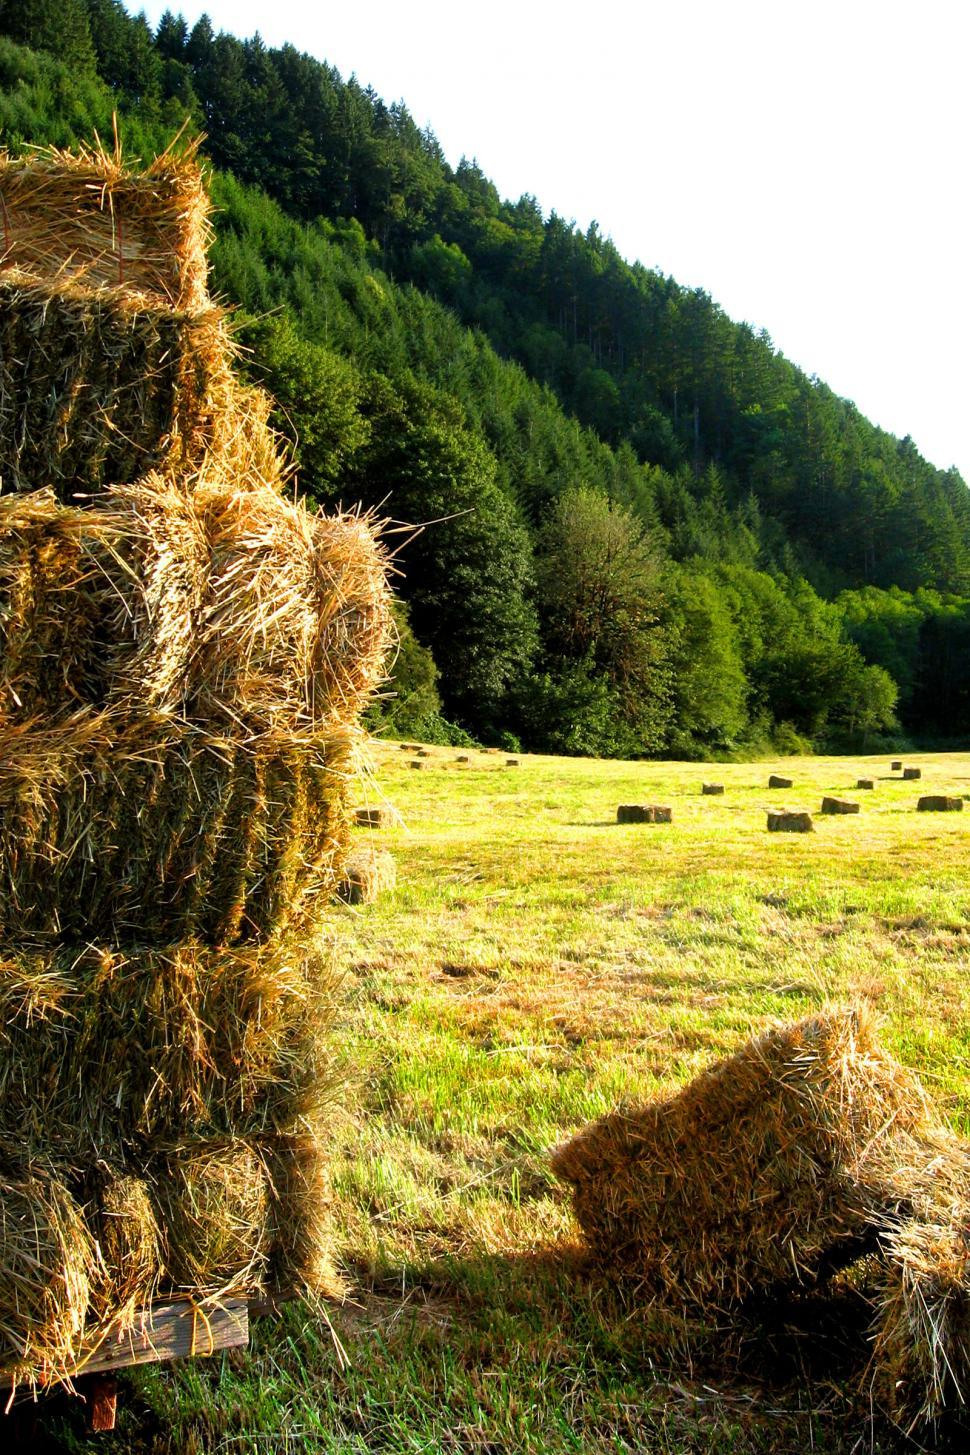 Download Free Stock HD Photo of Hay in the Fields Online